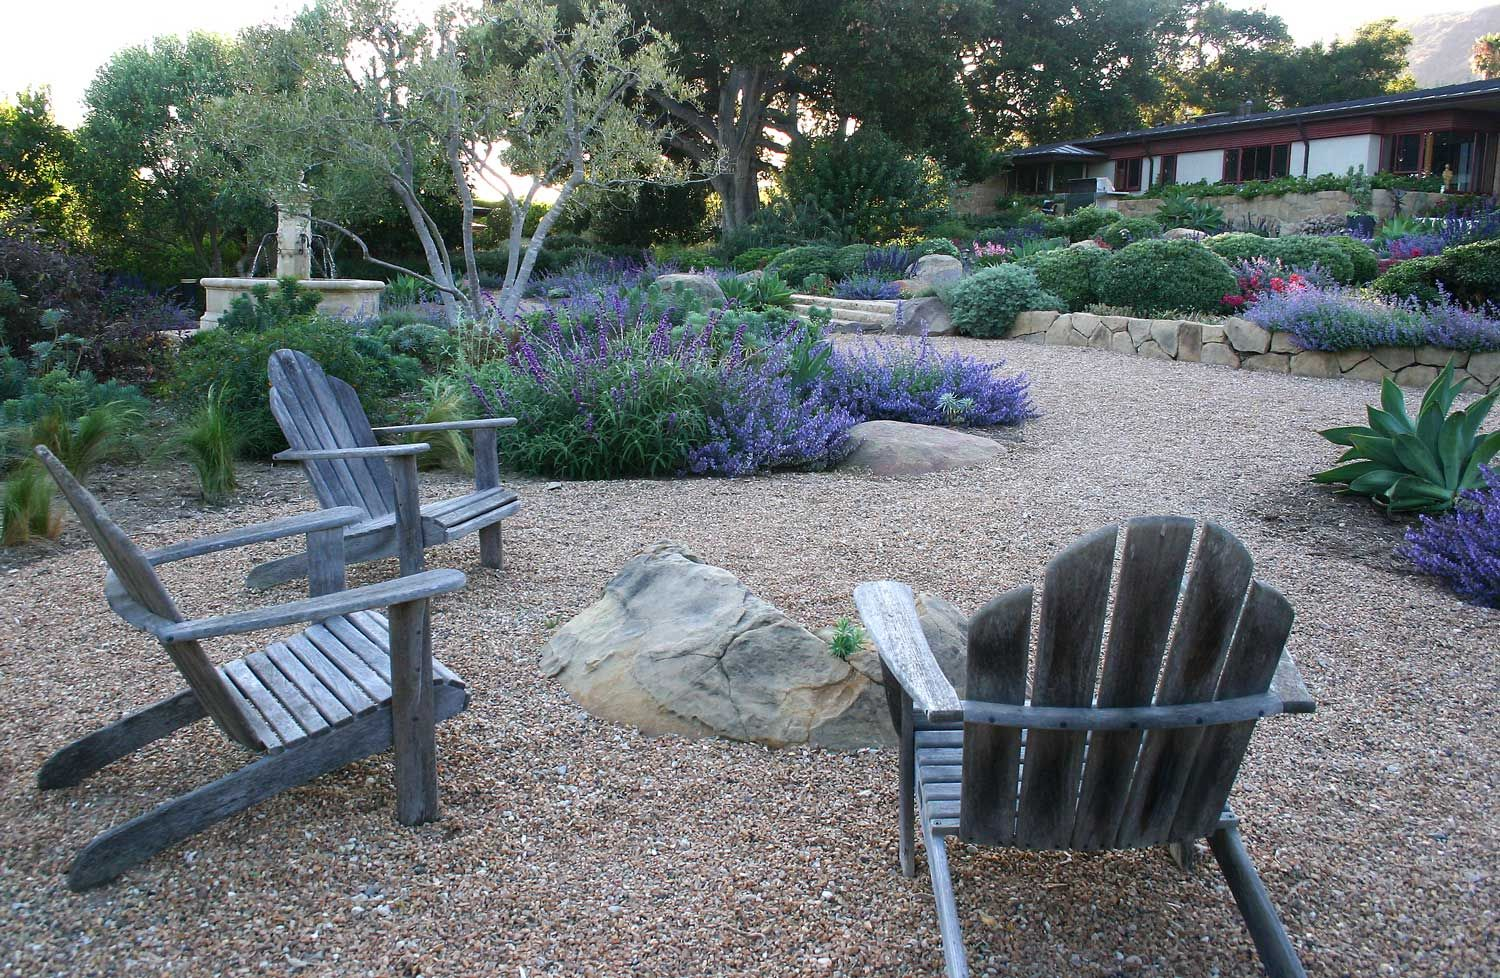 Modern Drought Tolerant Landscape Design Is Normally All Hard Lines. We Did  Something Different And Created Instead A Garden Of Color And Soft Curves.